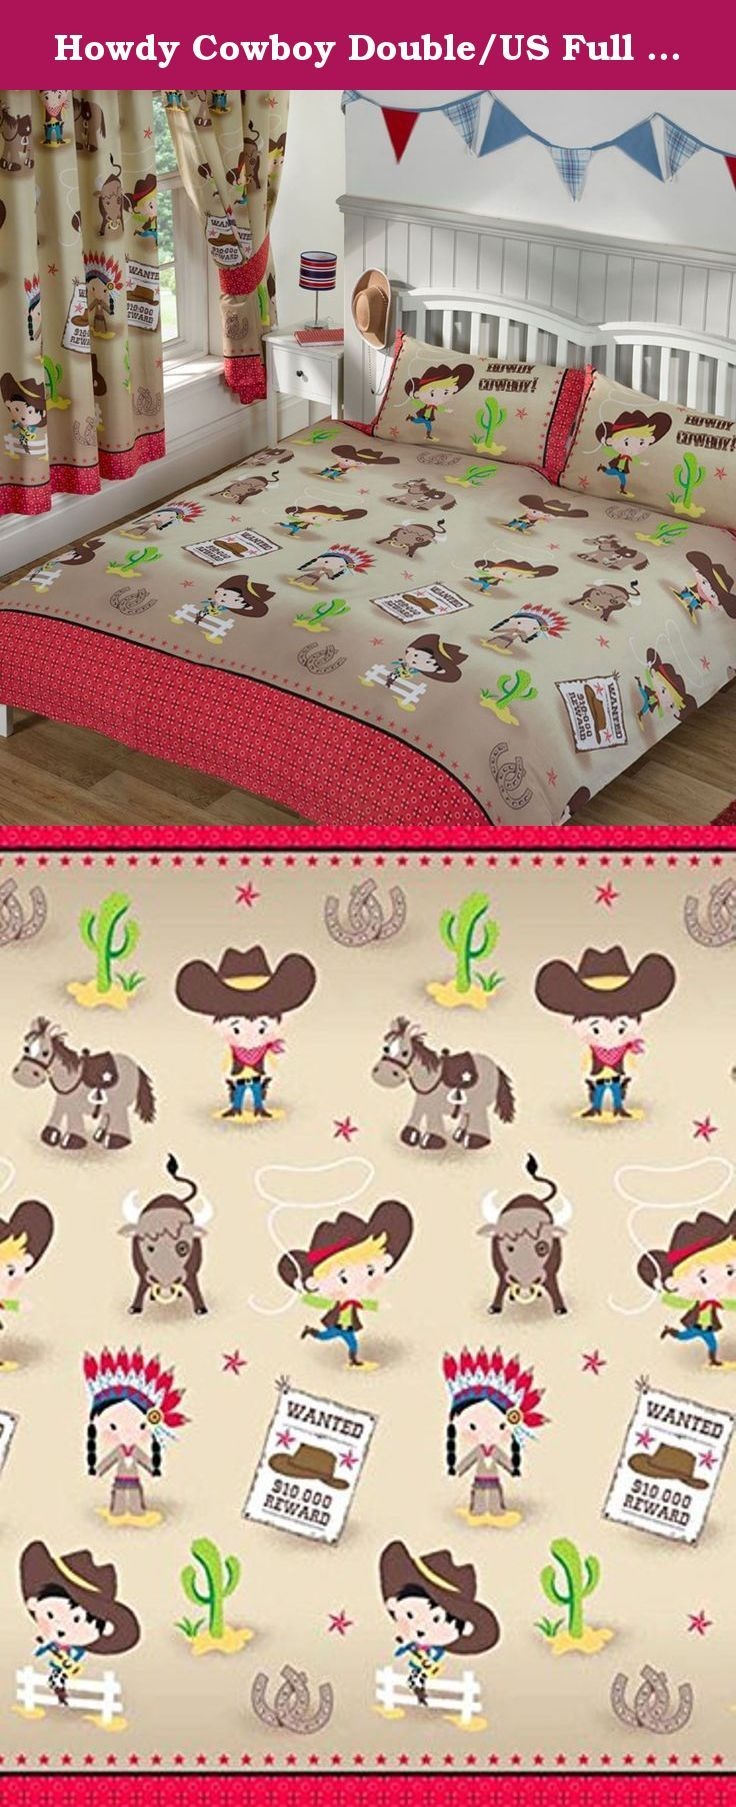 Howdy Cowboy Double/US Full Duvet Cover and Pillowcase Set. A fun cowboy themed bedding set Includes 1 x double duvet cover and 2 x pillowcases Duvet Cover size: 200cm x 200cm Pillowcase size: 50cm x 75cm Easycare material - 48% cotton, 52% polyester Machine washable To fit standard UK double bed Main colour: Sand Matching curtains also available Also available in single and junior sizes The Howdy Cowboy Double Duvet Cover and Pillowcase Set has all the fun and adventure of the Wild West!...